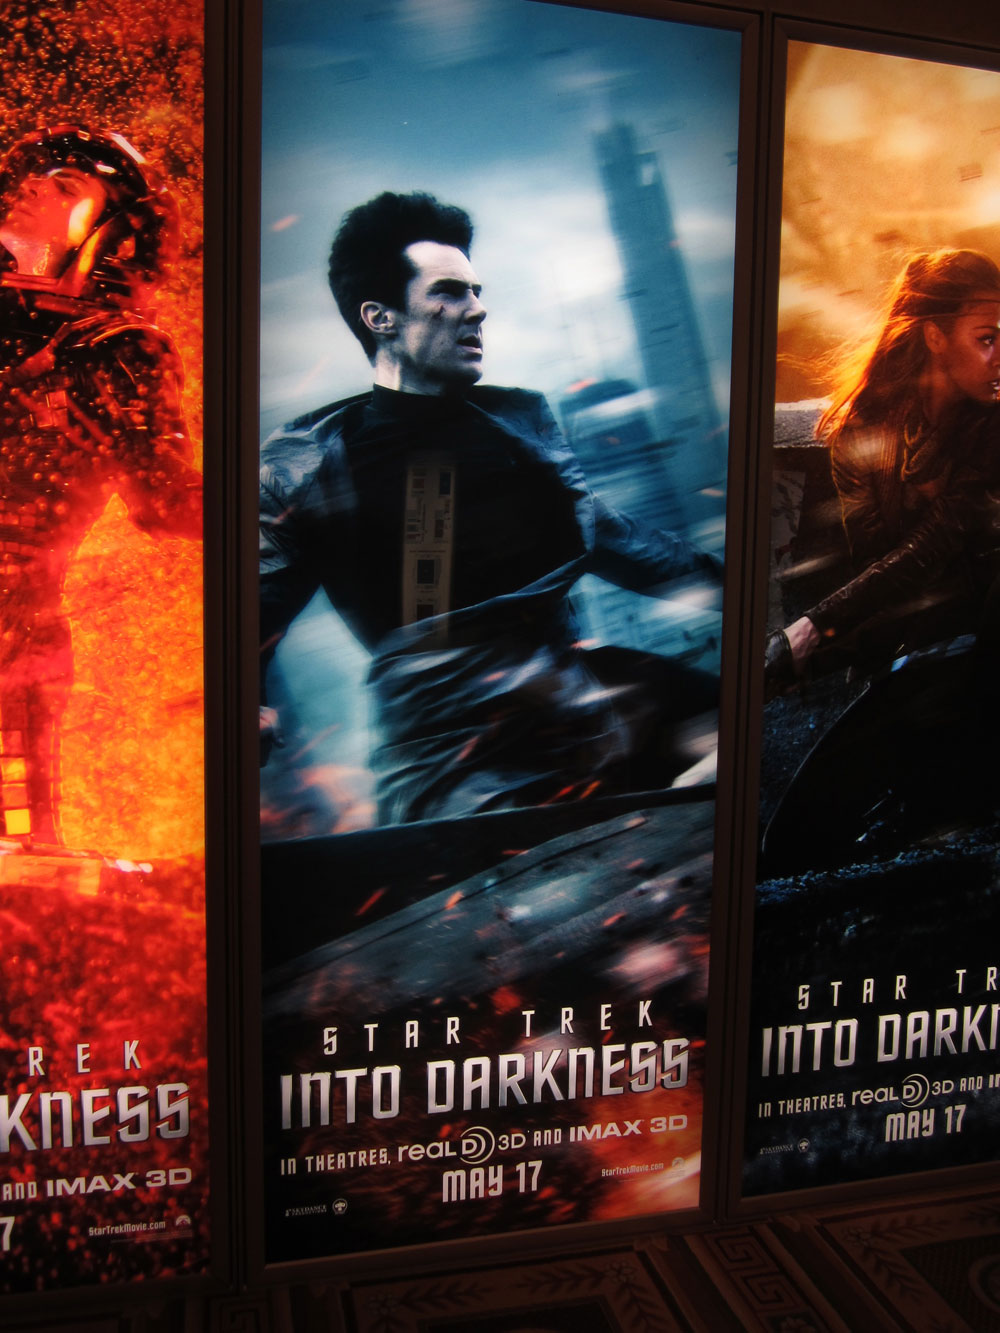 Star Trek Into Darkness Character Poster at CinemaCon